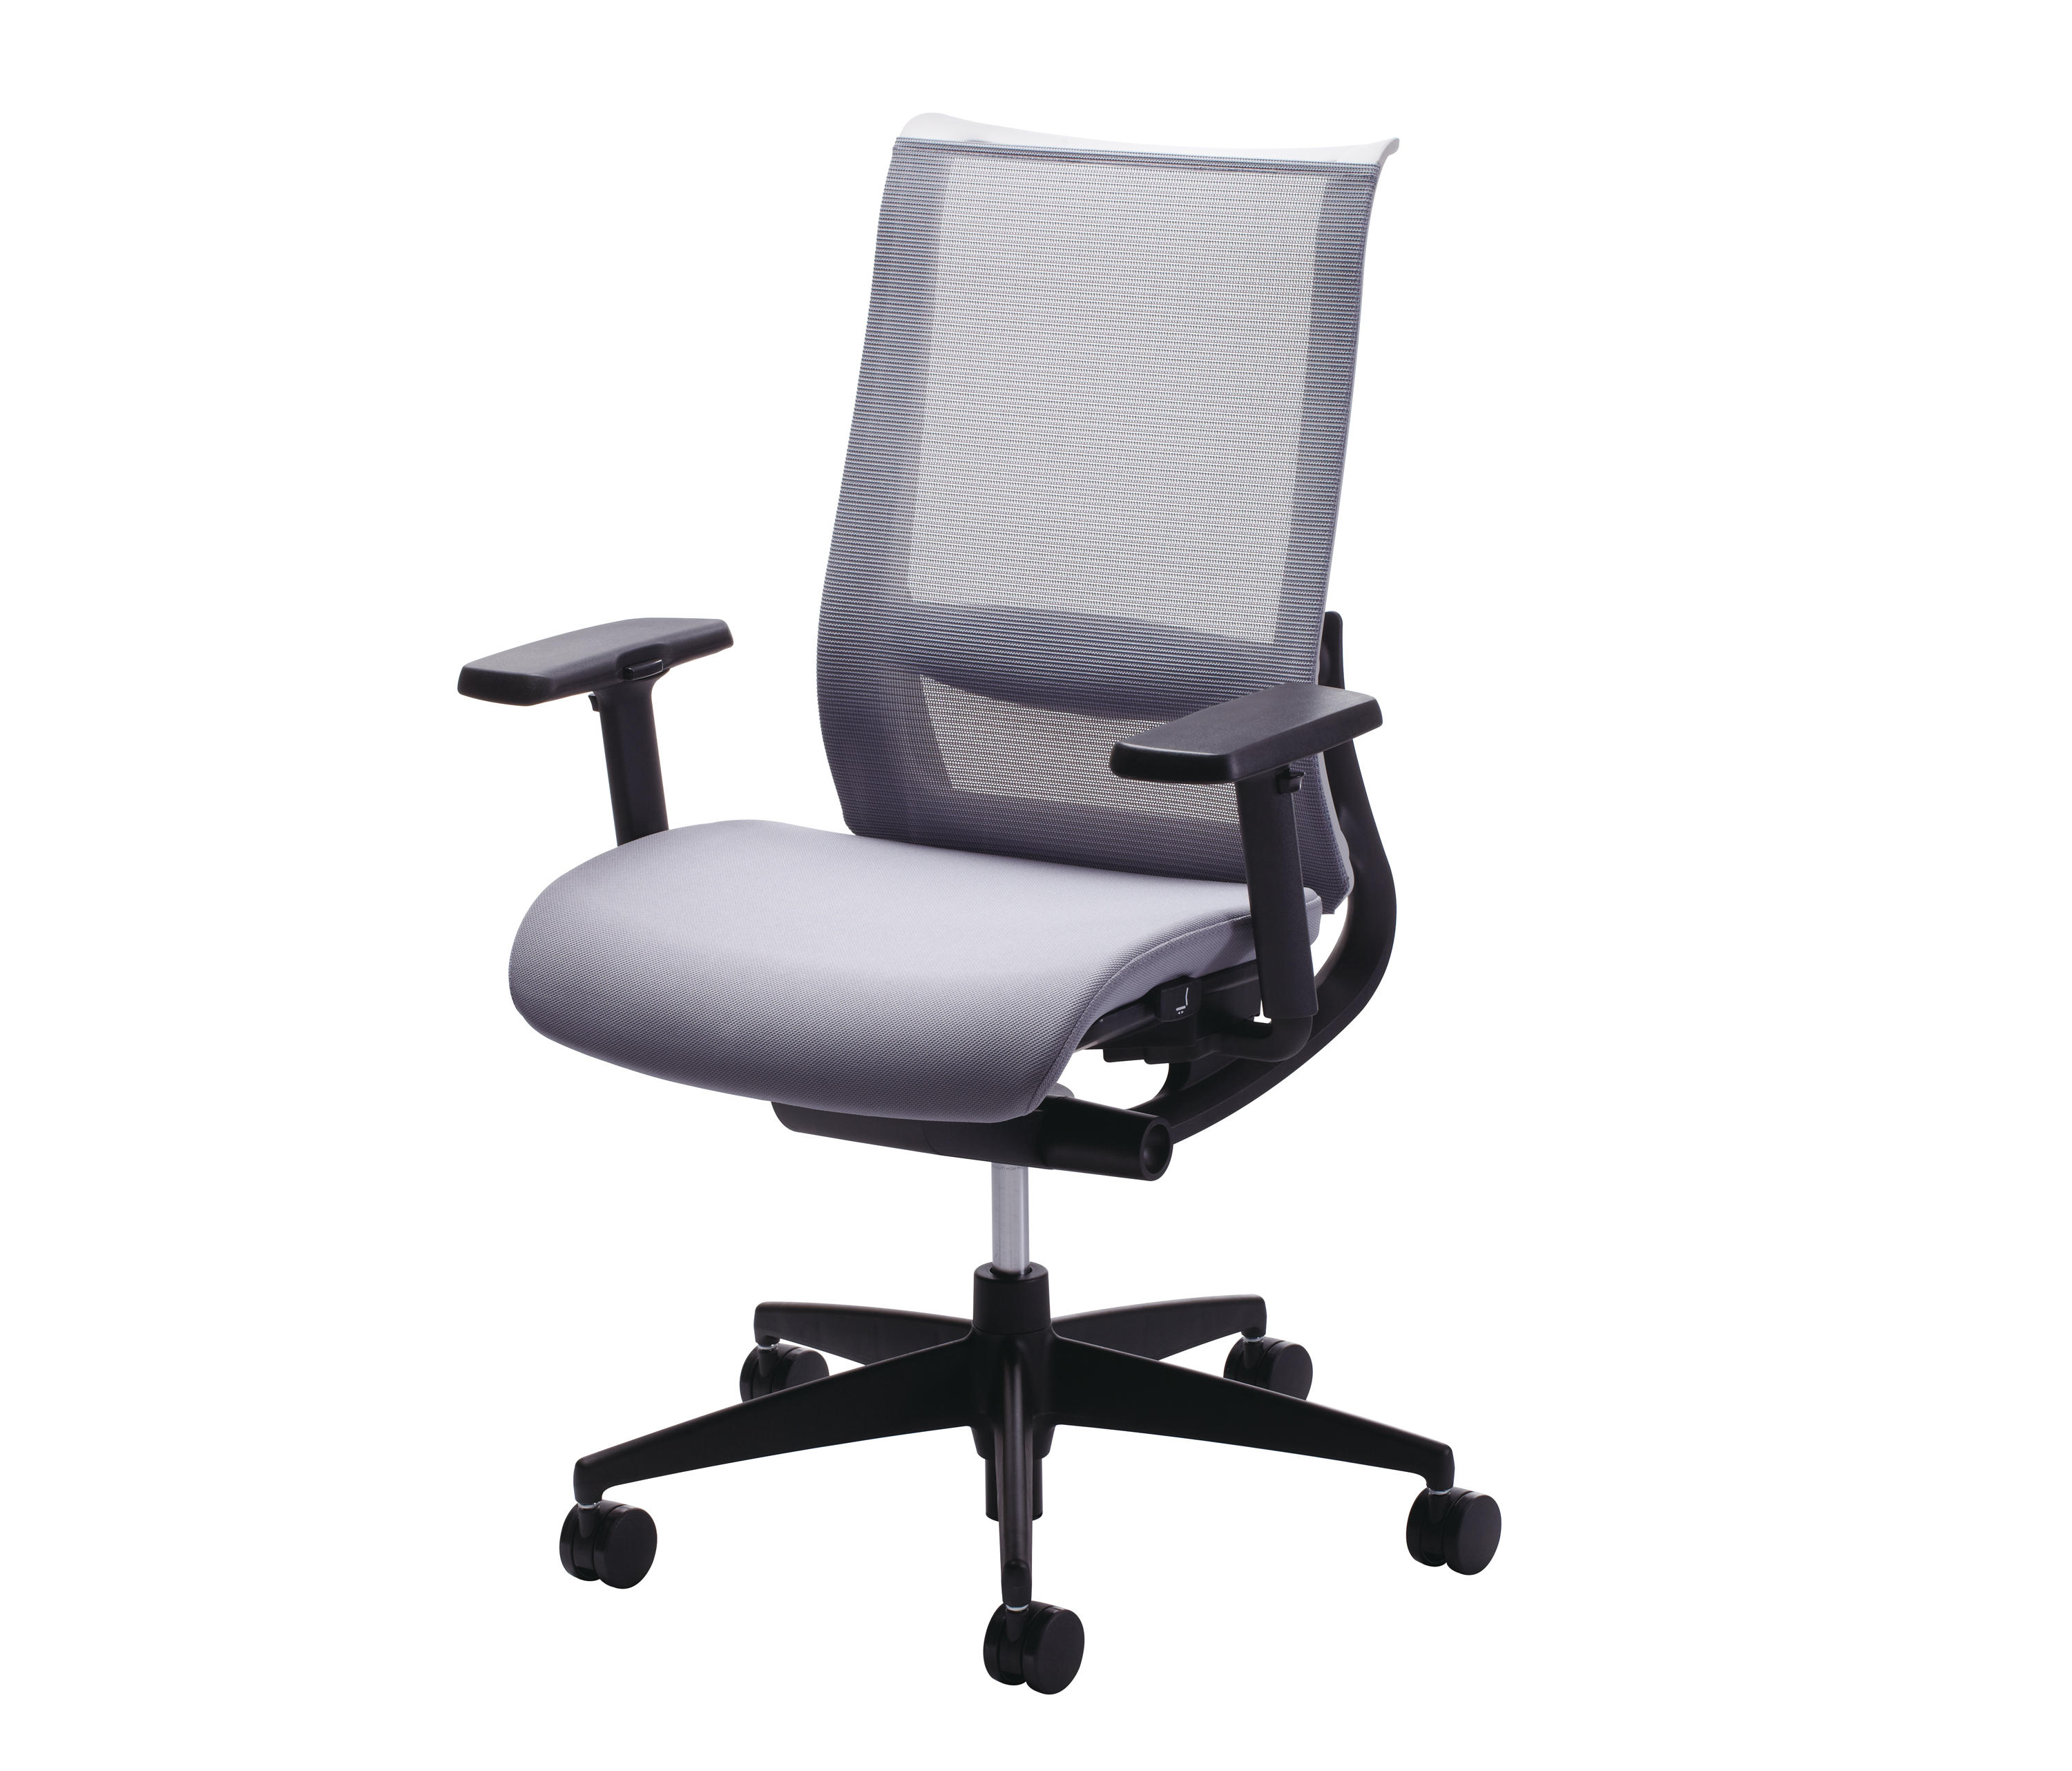 AIRGRACE Management chairs from Kokuyo